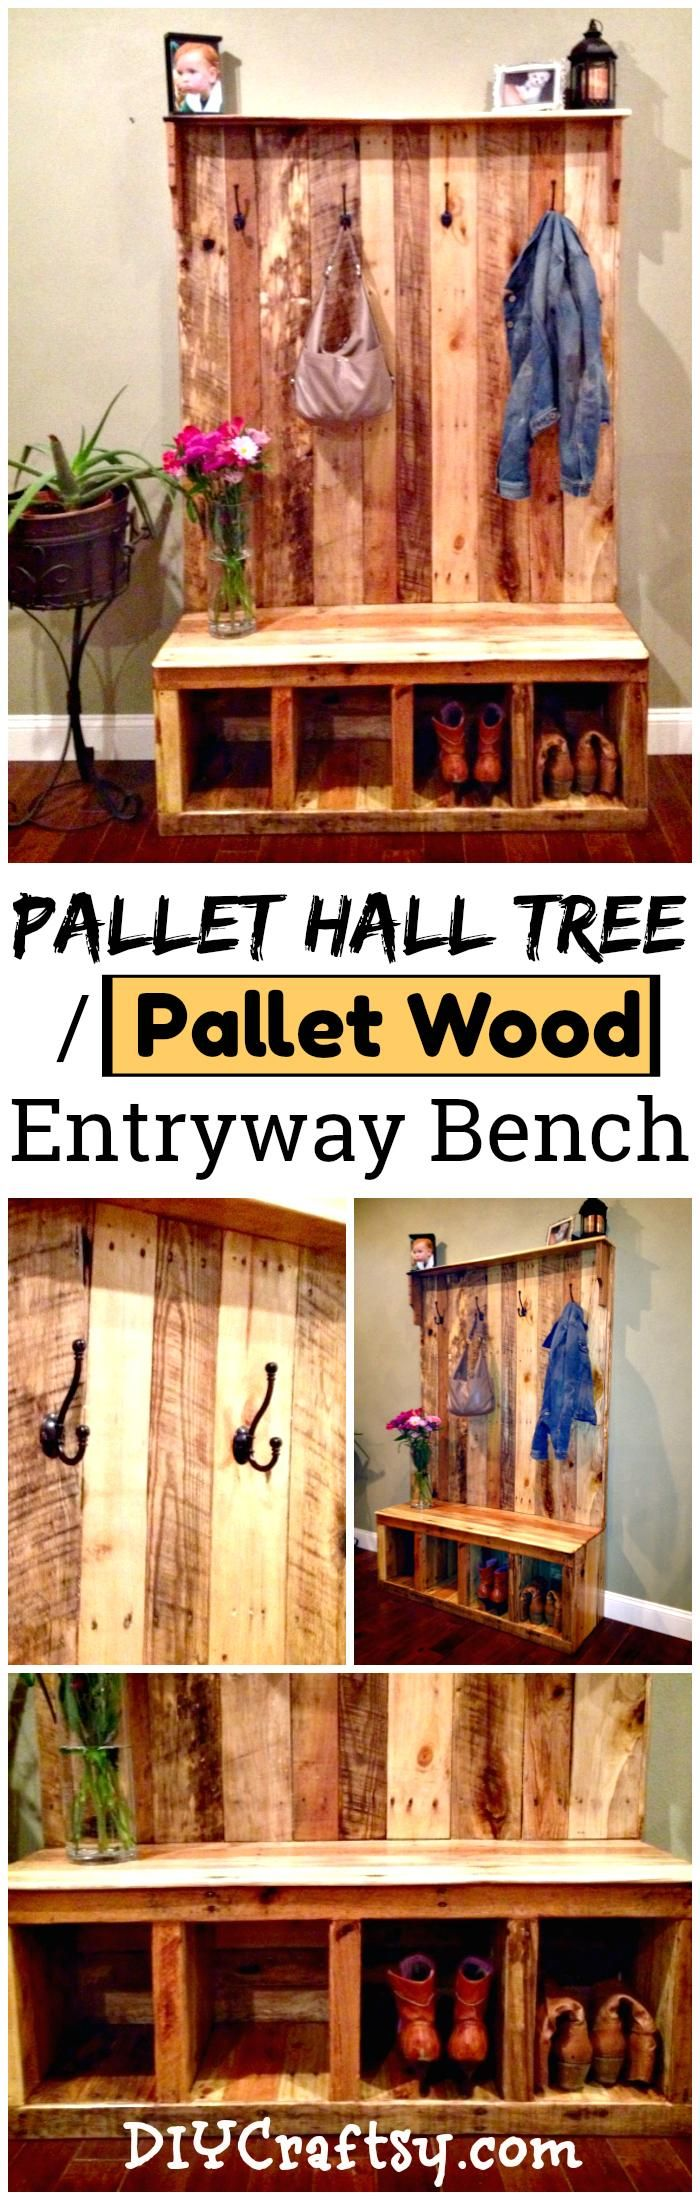 Decor Diy Inspiration Diy Your Own Pallet Hall Tree Or Pallet Wood Entryway Bench Decor Object Your Daily Dose Of Best Home Decorating Ideas Interior Design Inspiration